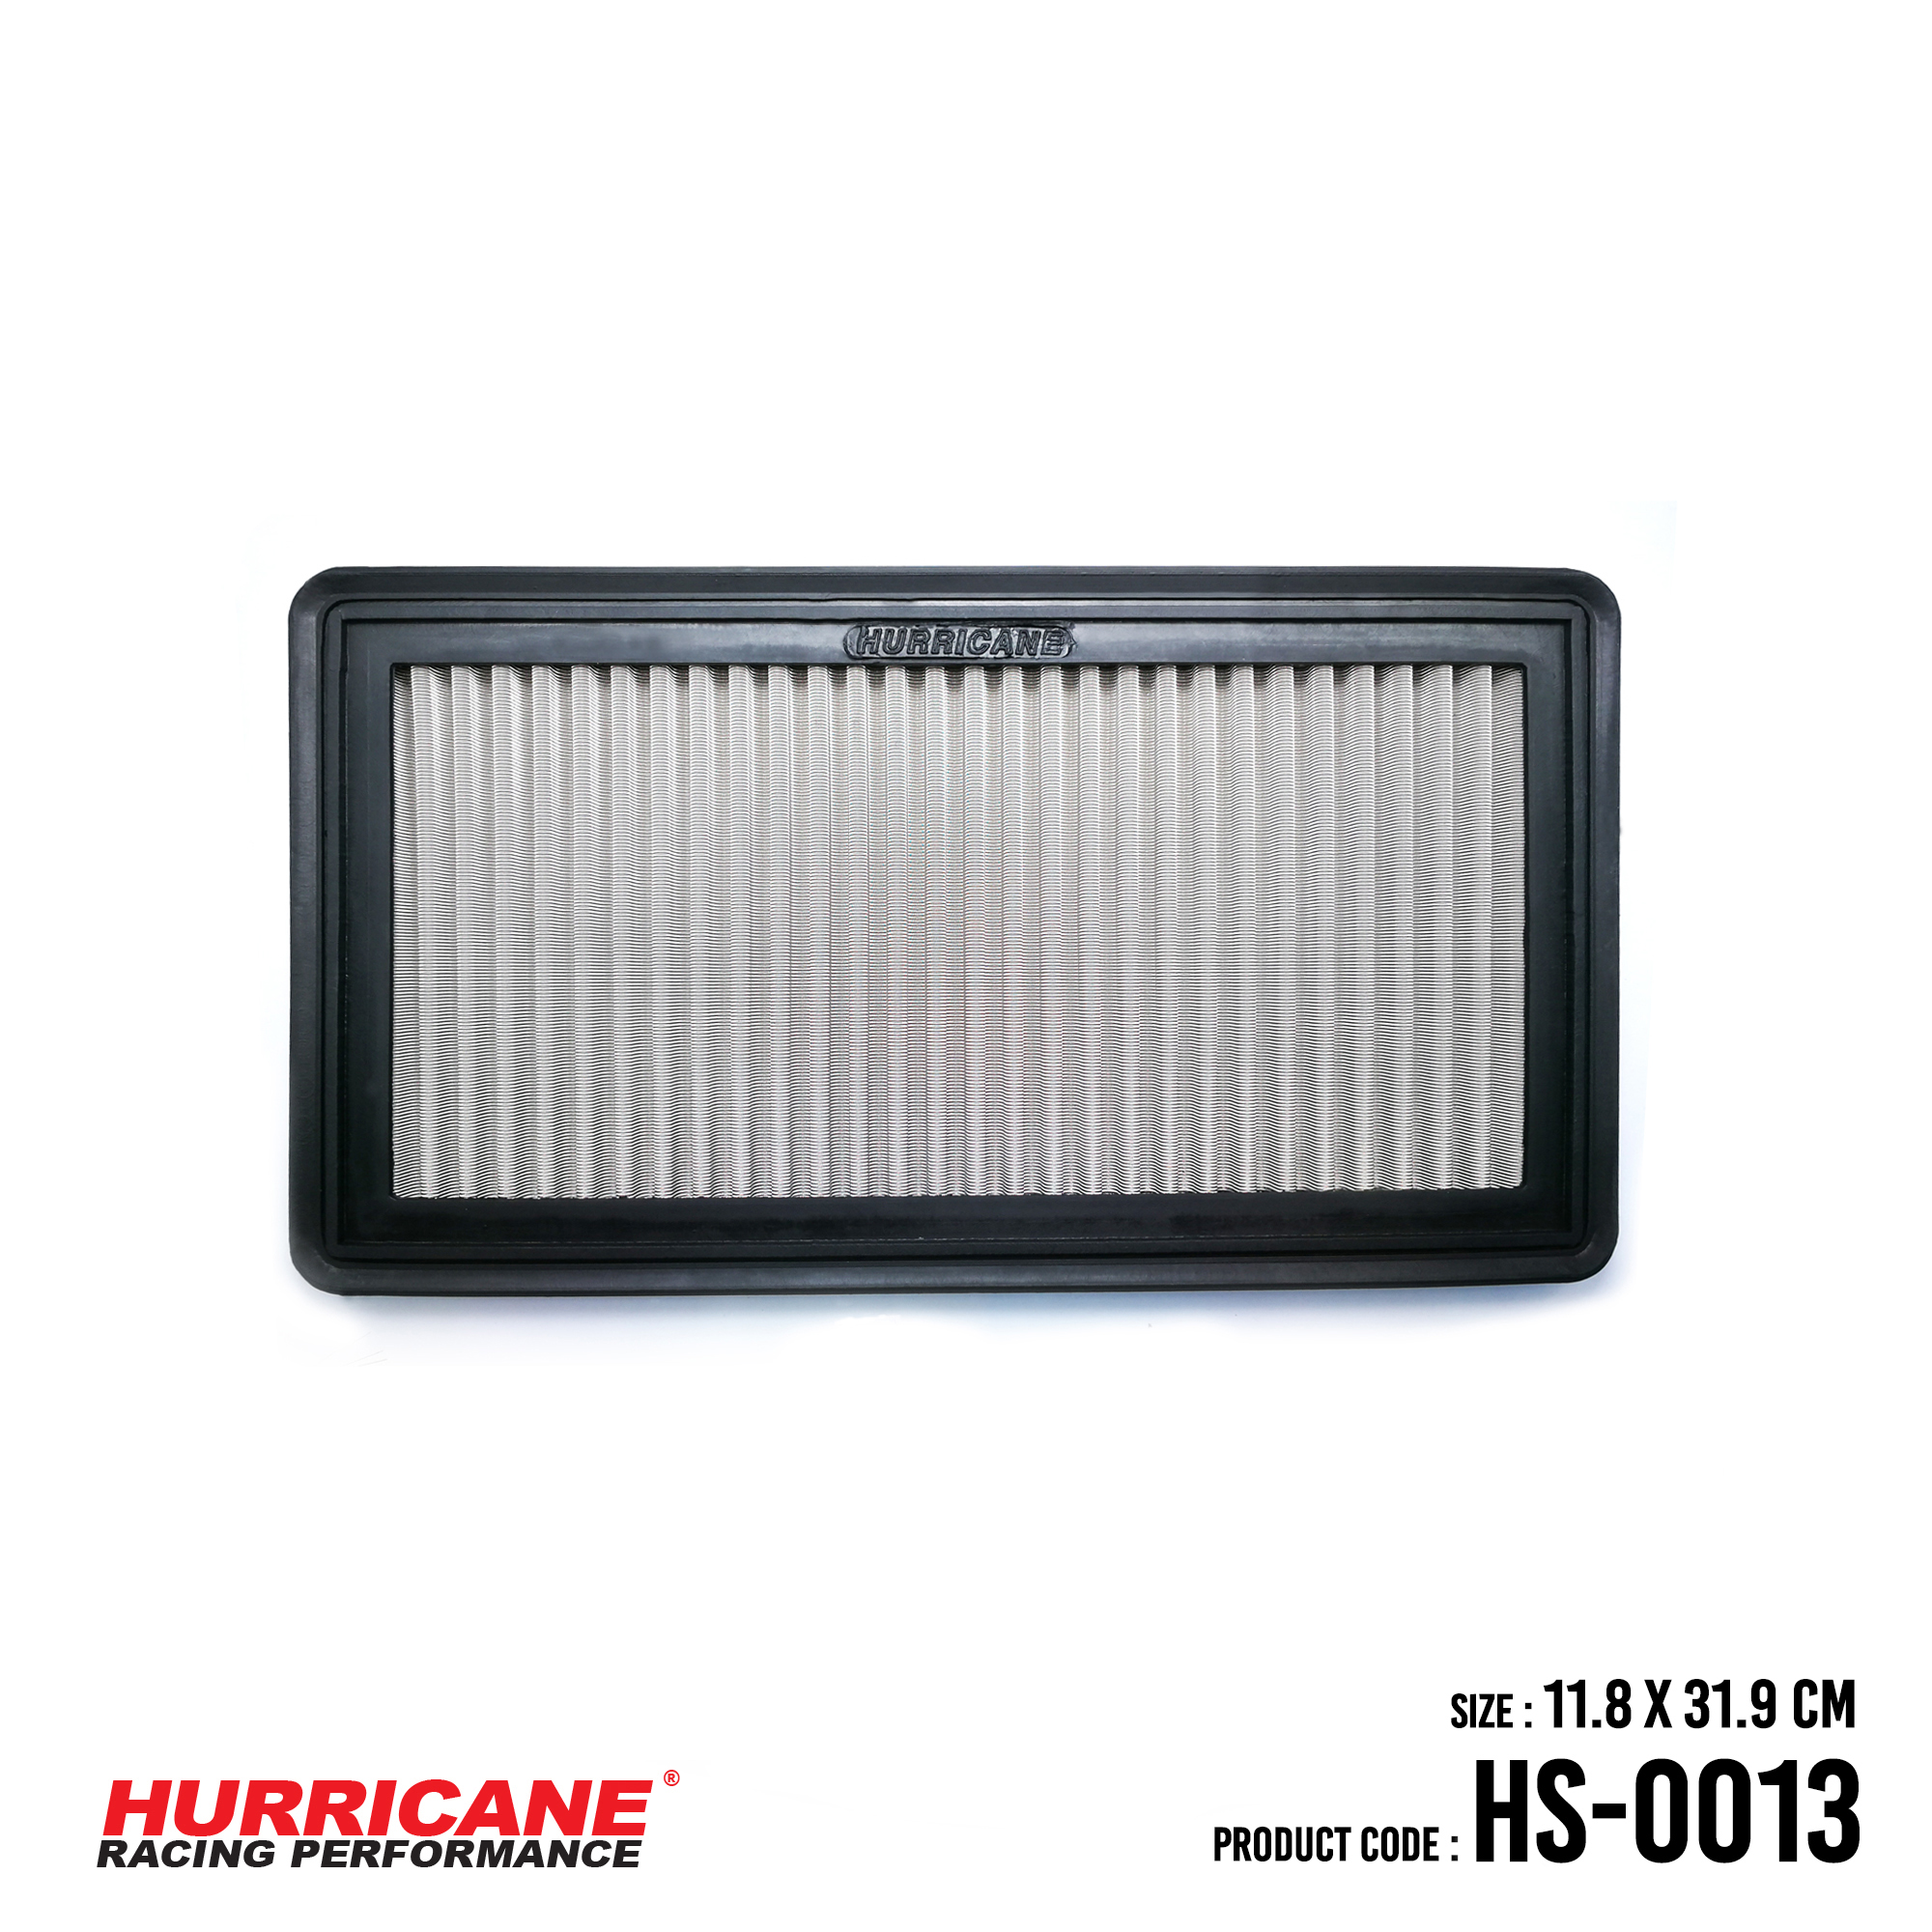 HURRICANE STAINLESS STEEL AIR FILTER FOR HS-0013FordMazda